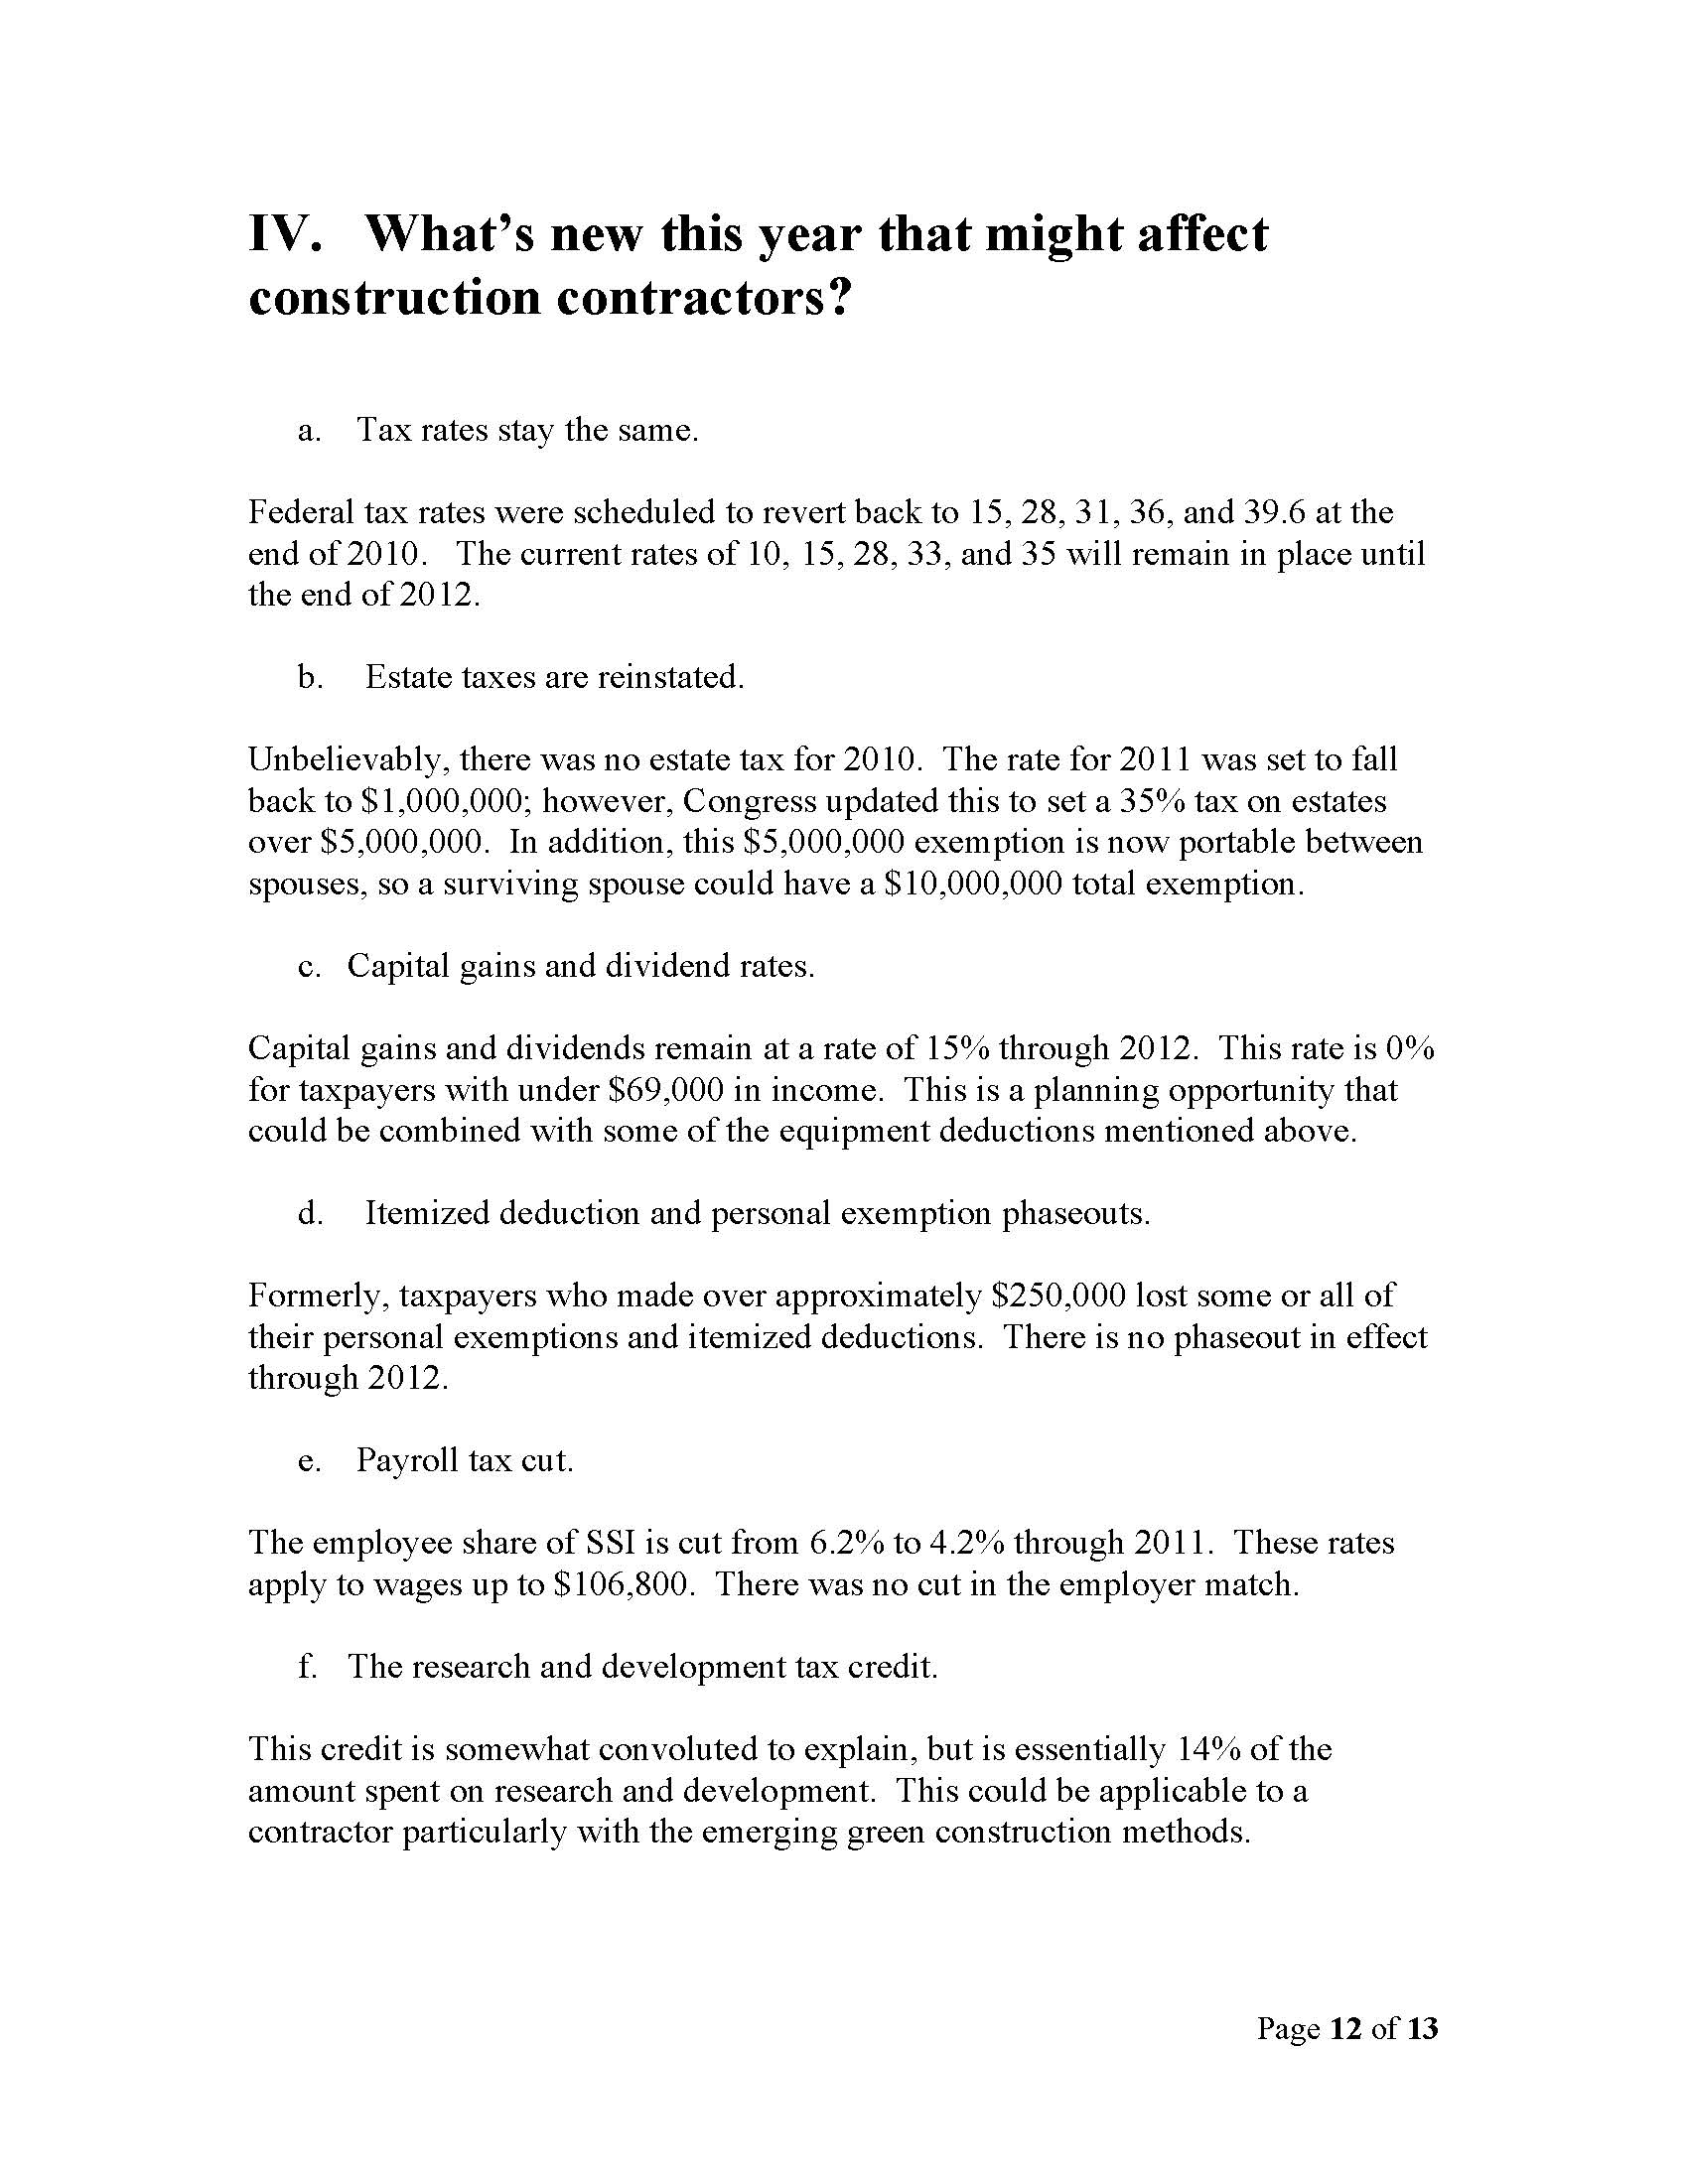 const-conf-construction-accounting_Page_12.jpg